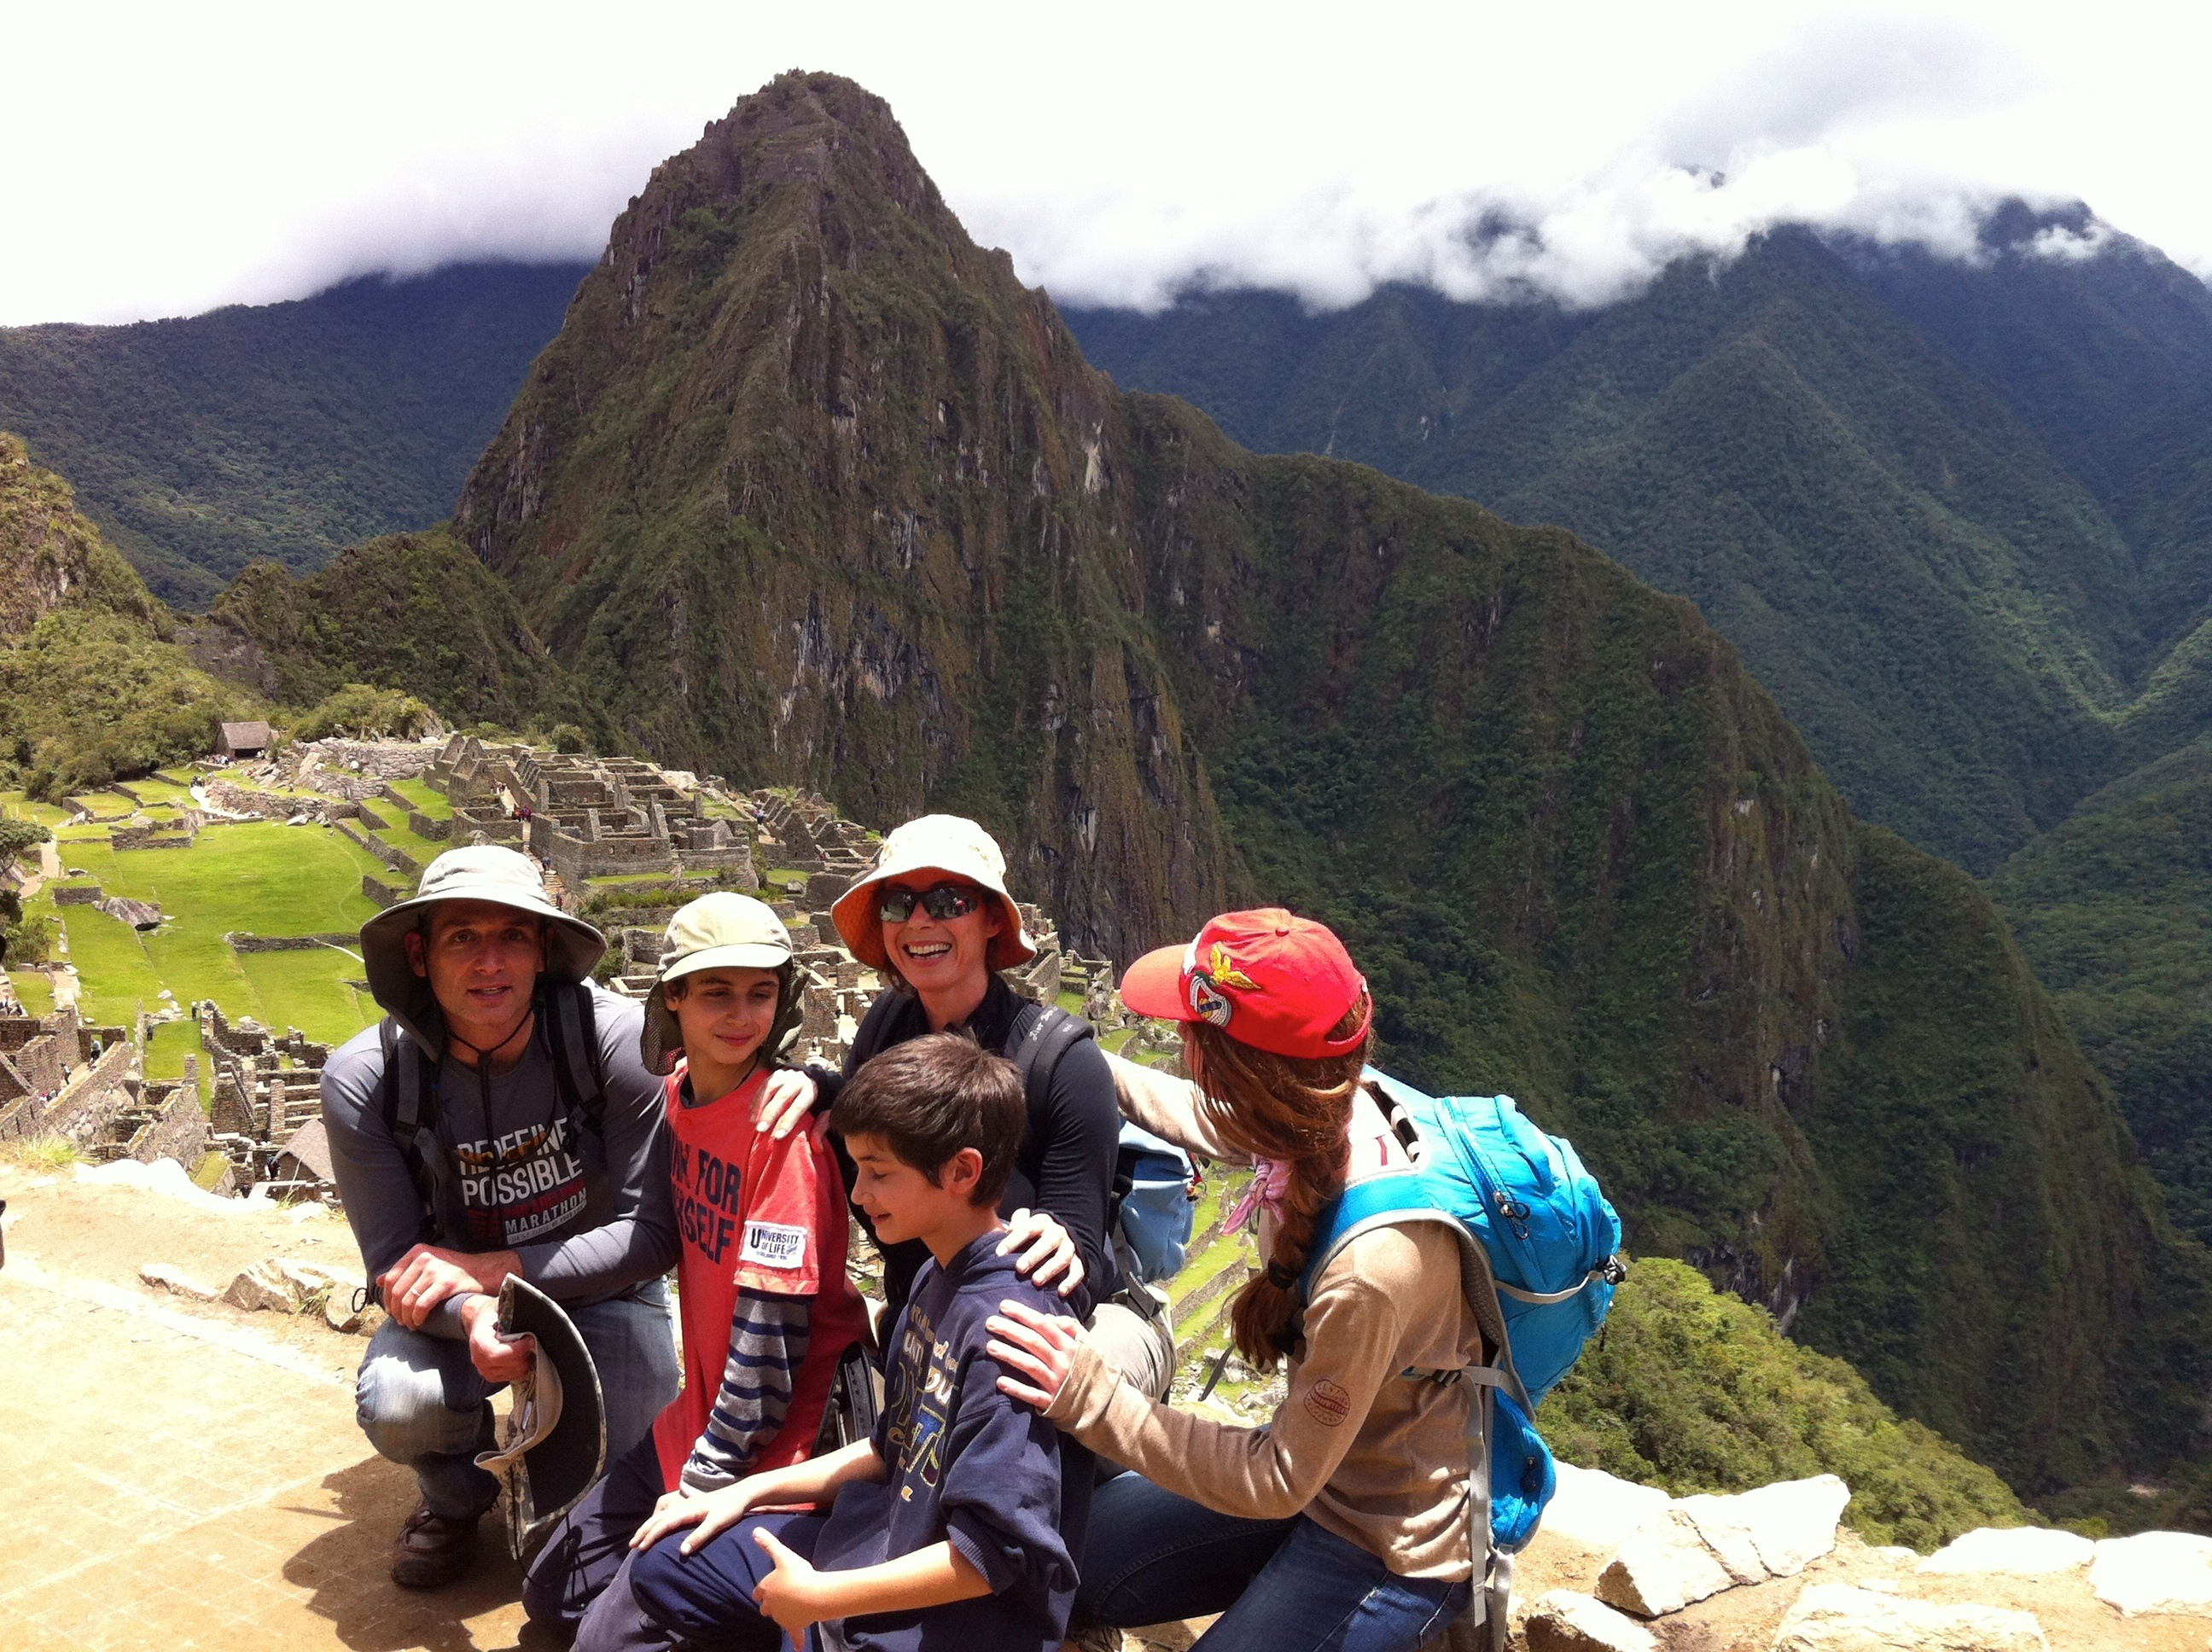 a must photo- unavoidable. Wayna Picchu in the background